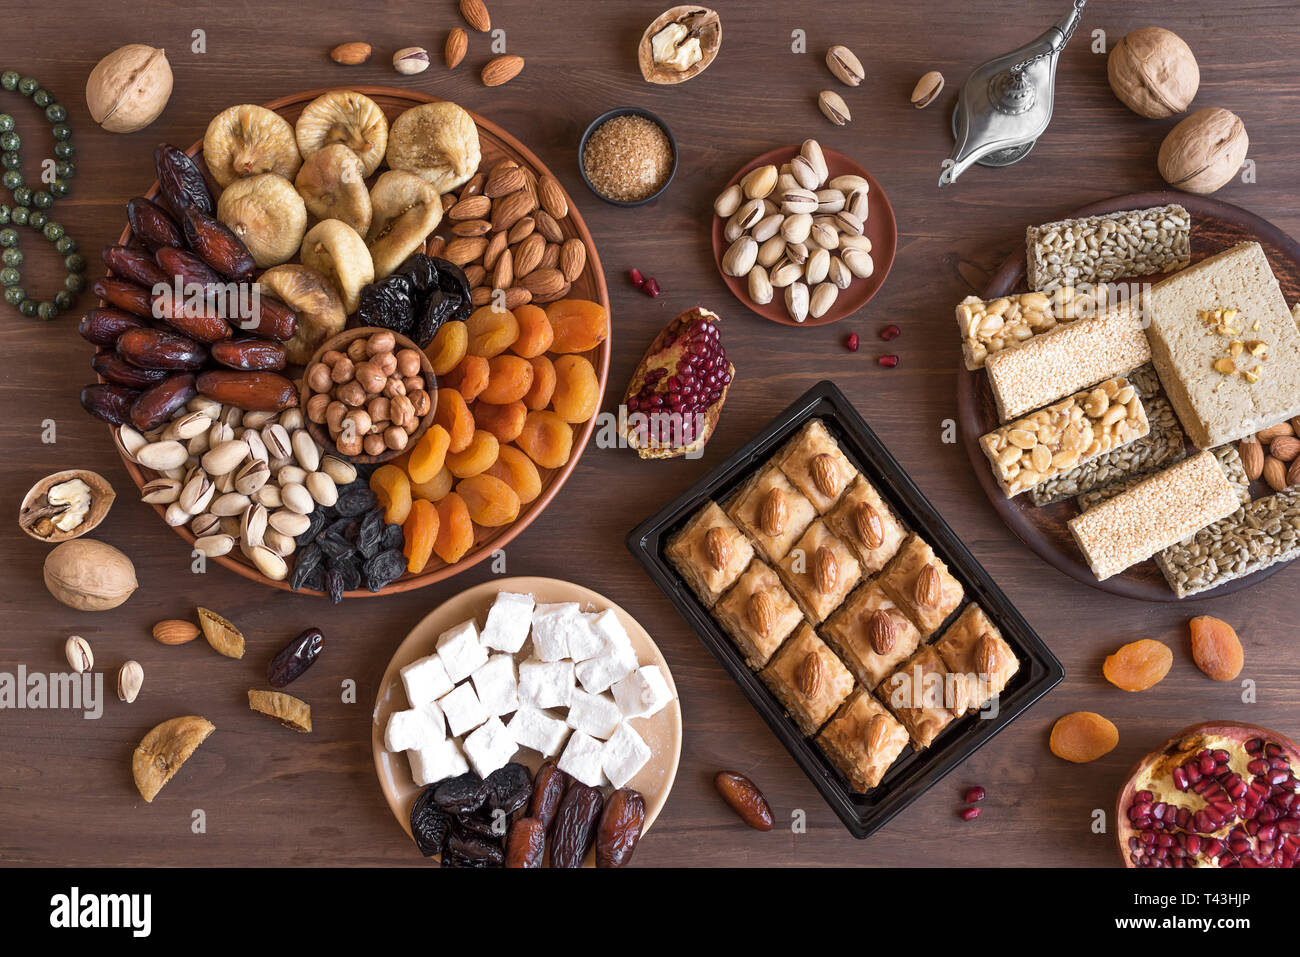 Assortment, set of Eastern, Arabic, Turkish sweets, nuts and dried fruits on wooden table, top view, flat lay. Holiday Middle Eastern traditional swee - Stock Image